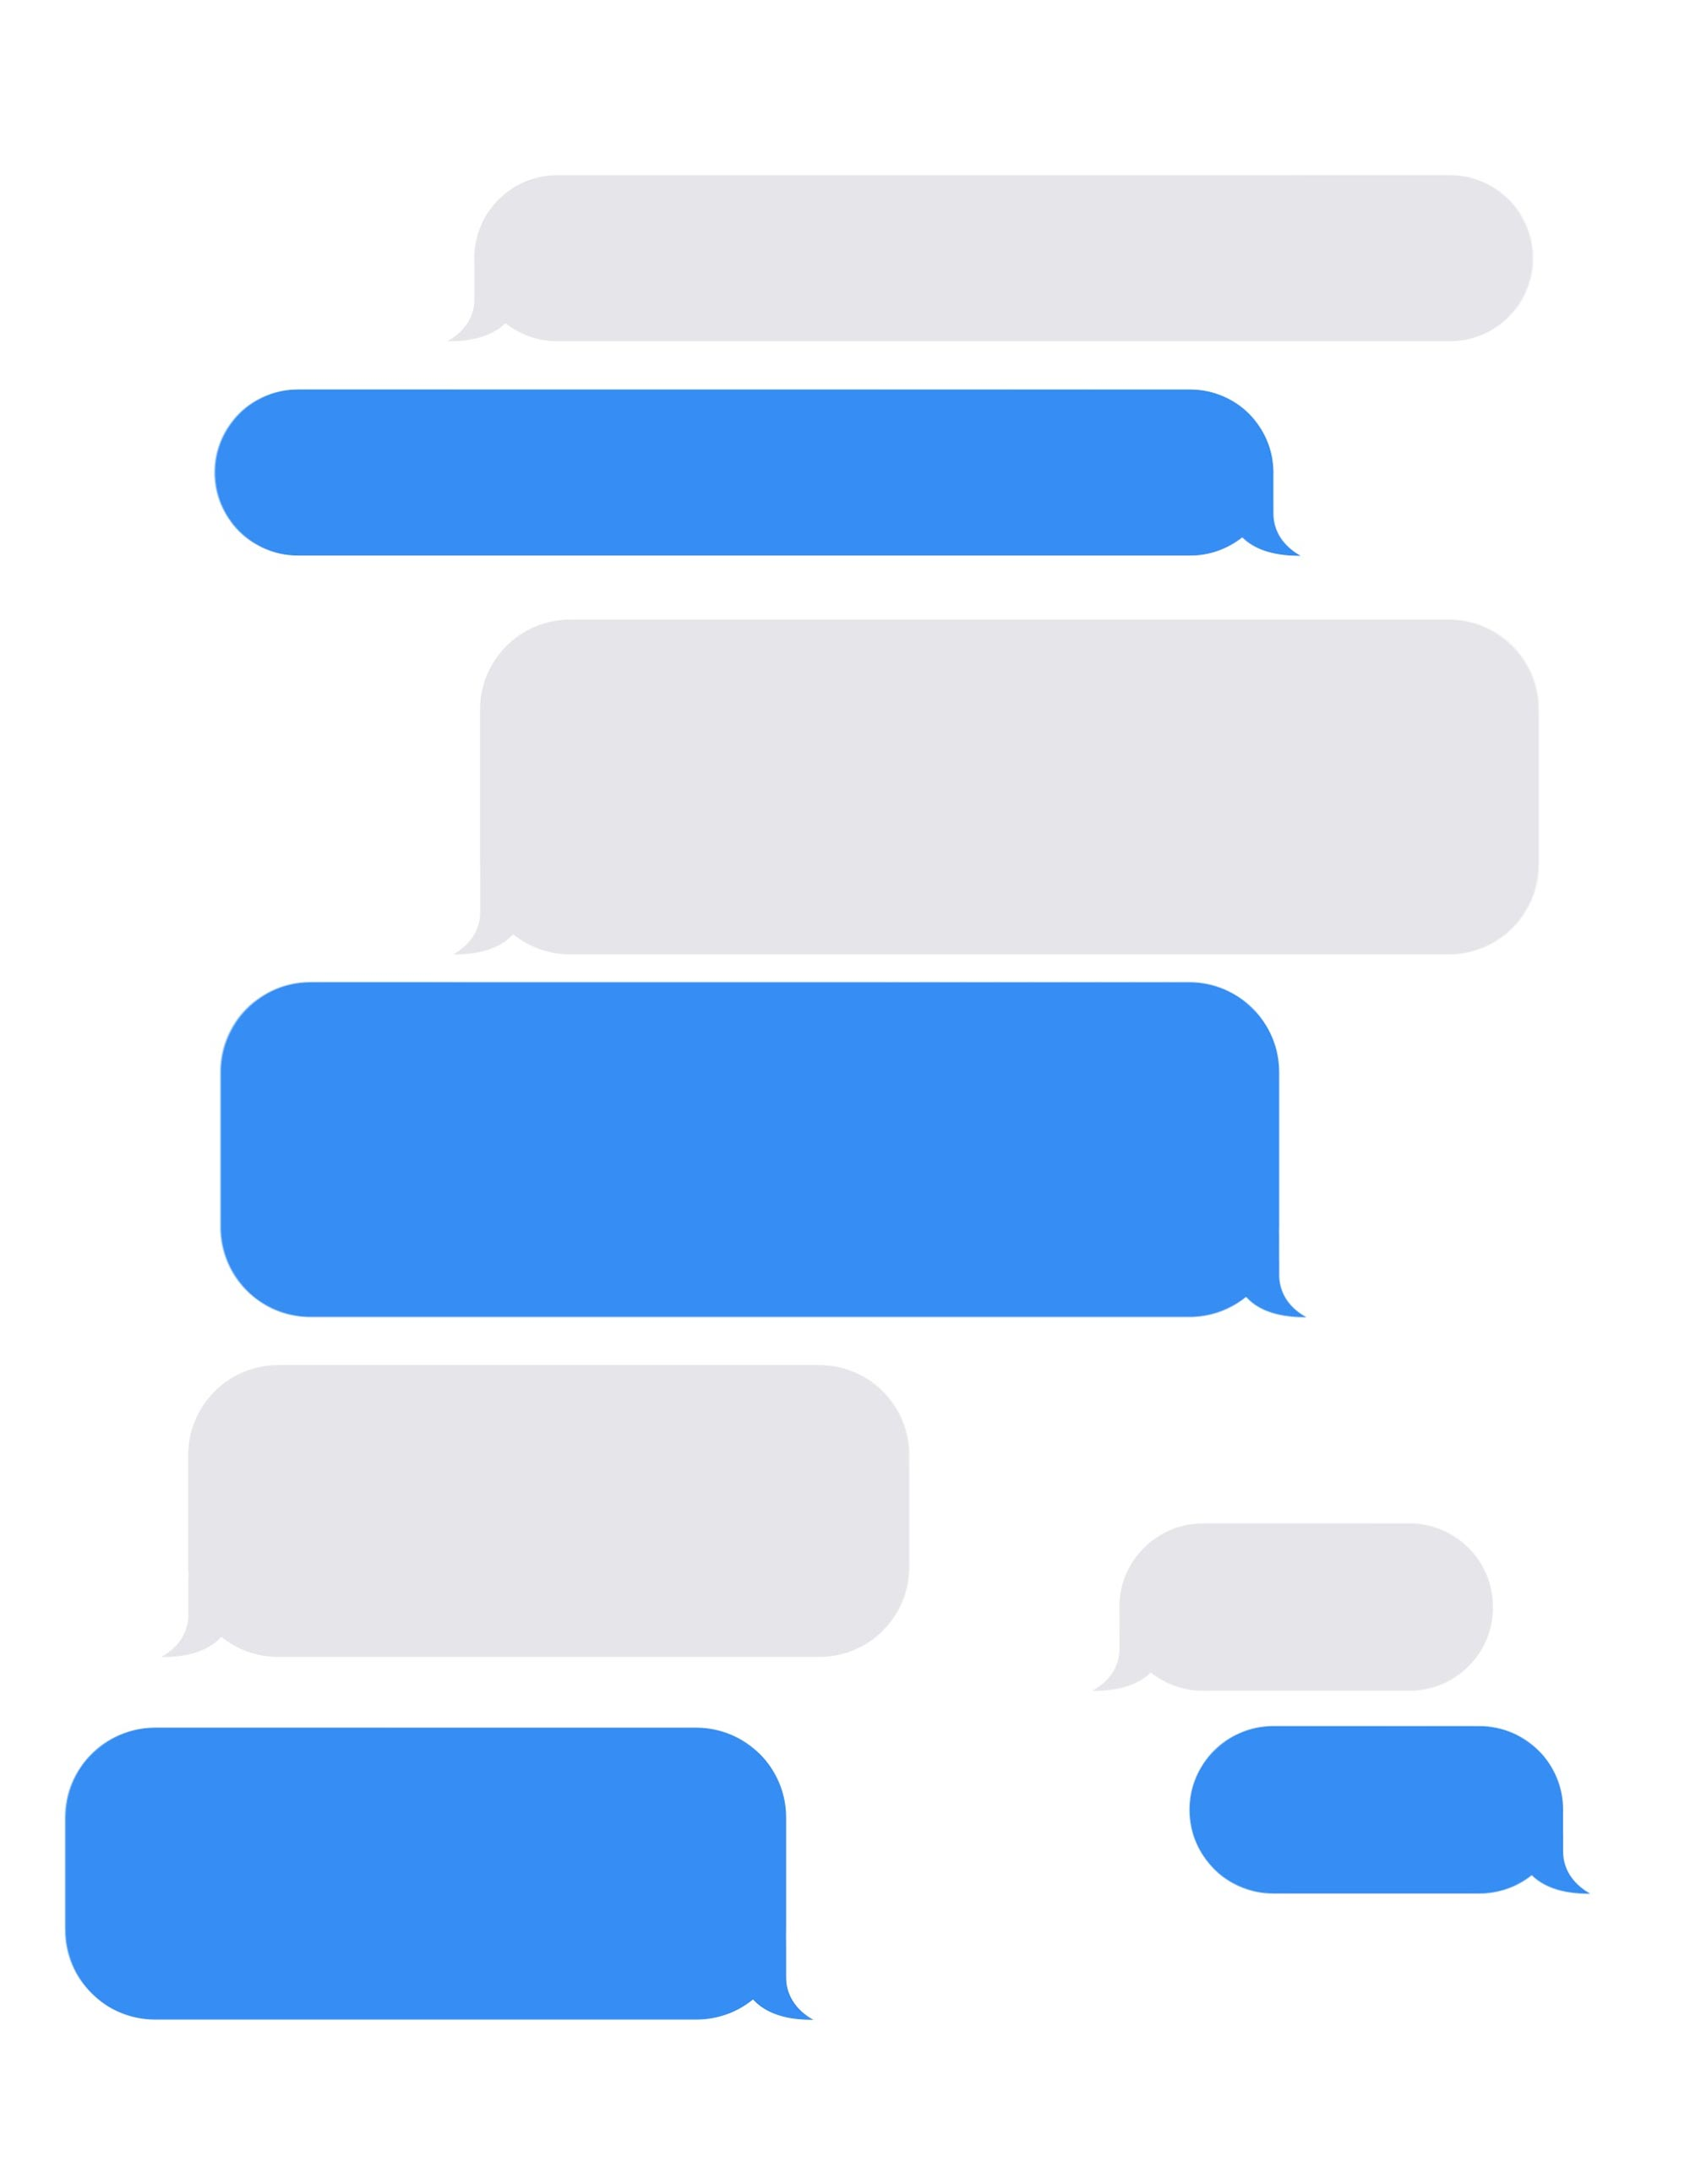 text-messaging-speech-bubbles.jpg